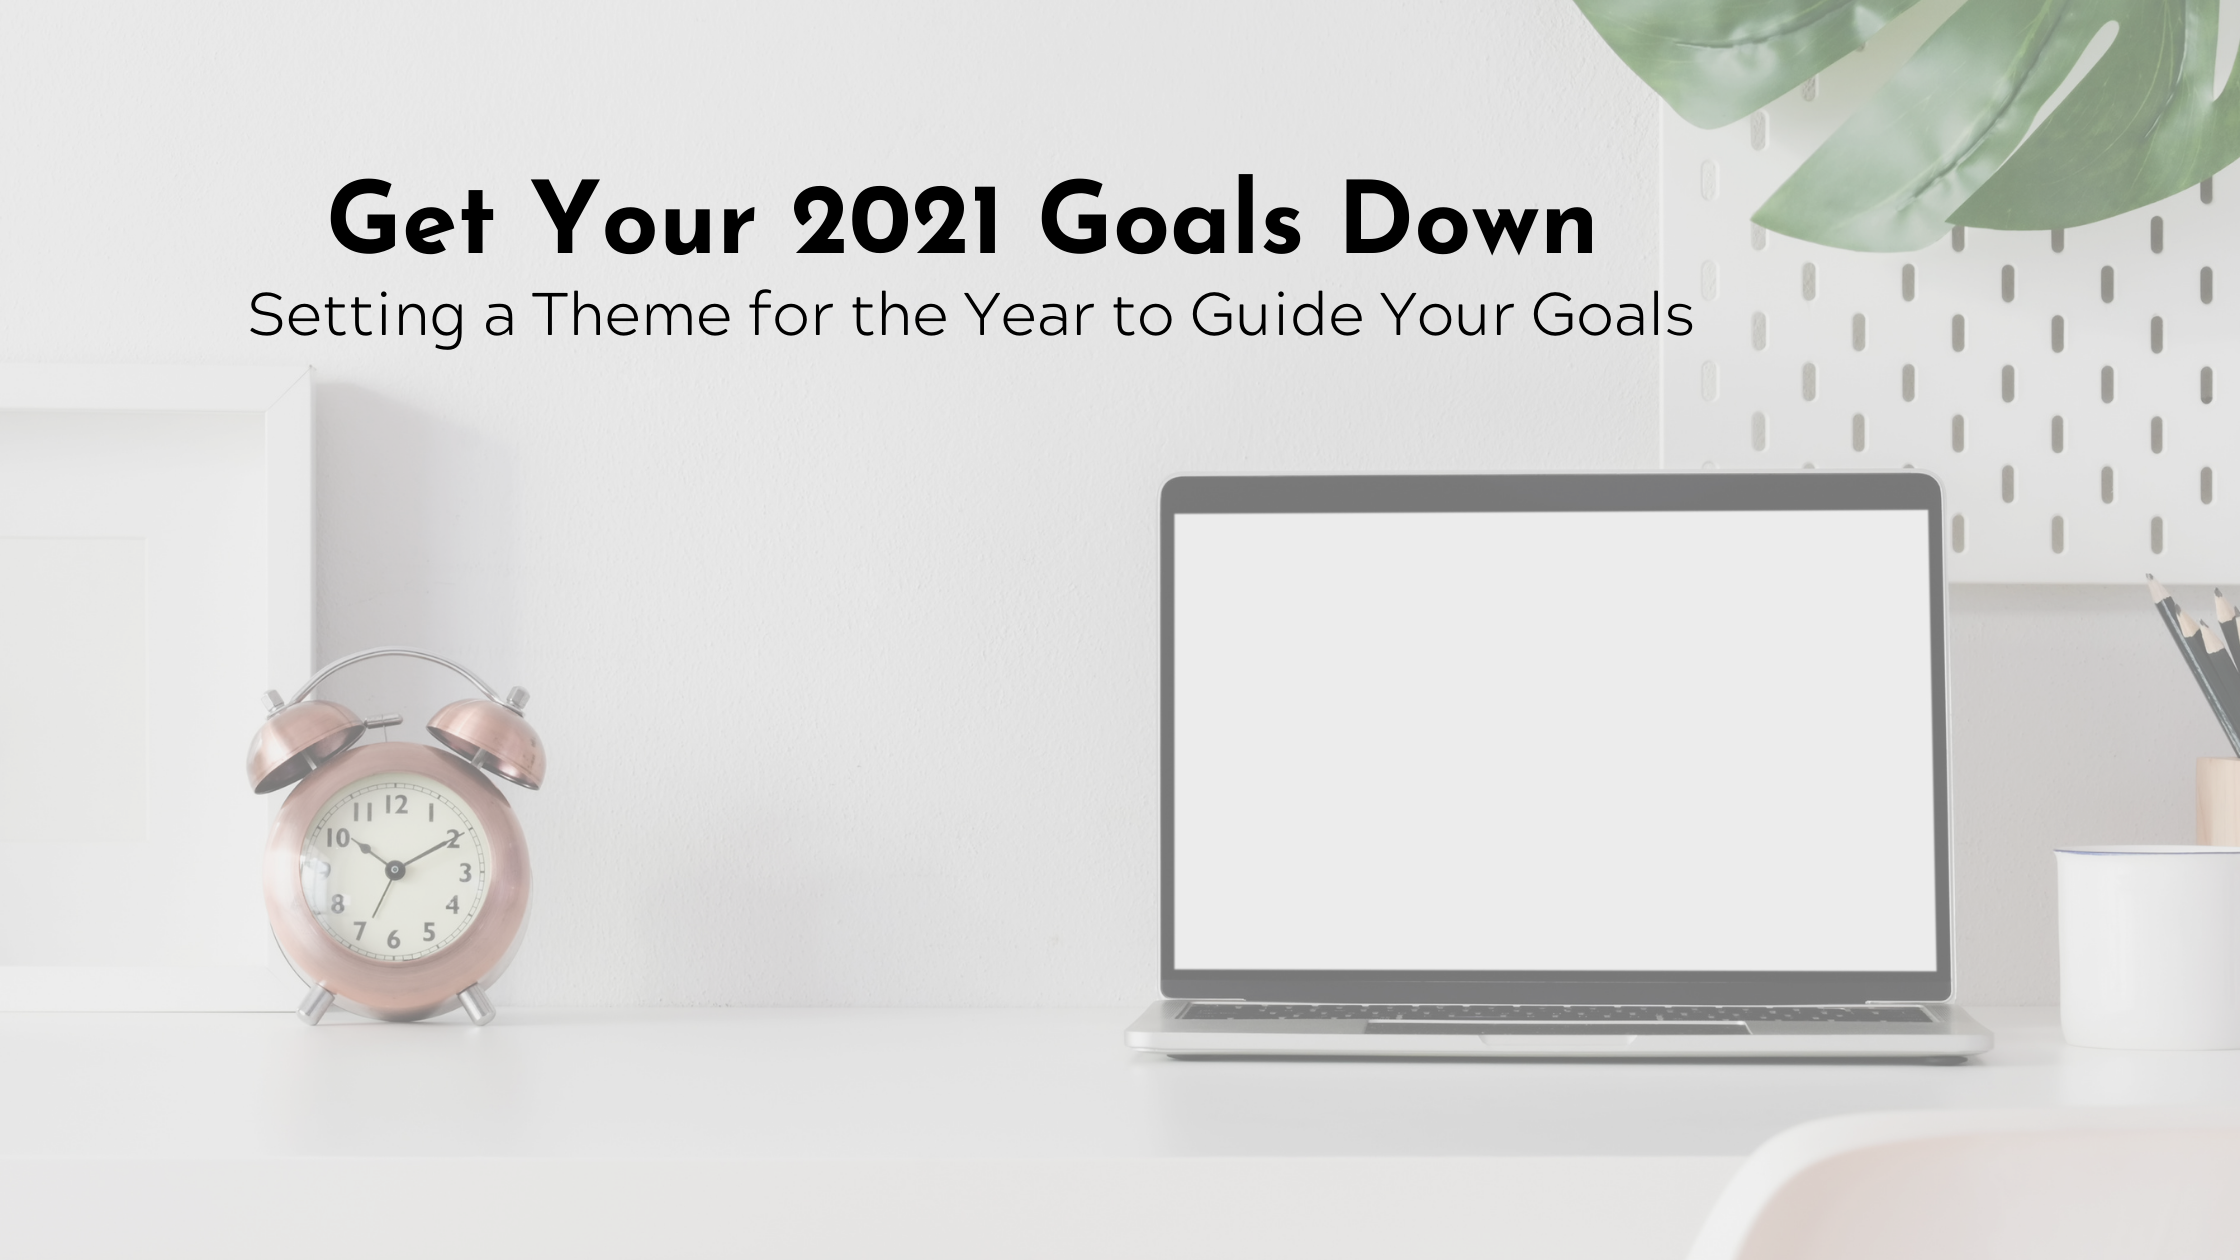 Get Your 2021 Goals Down: Use a Theme